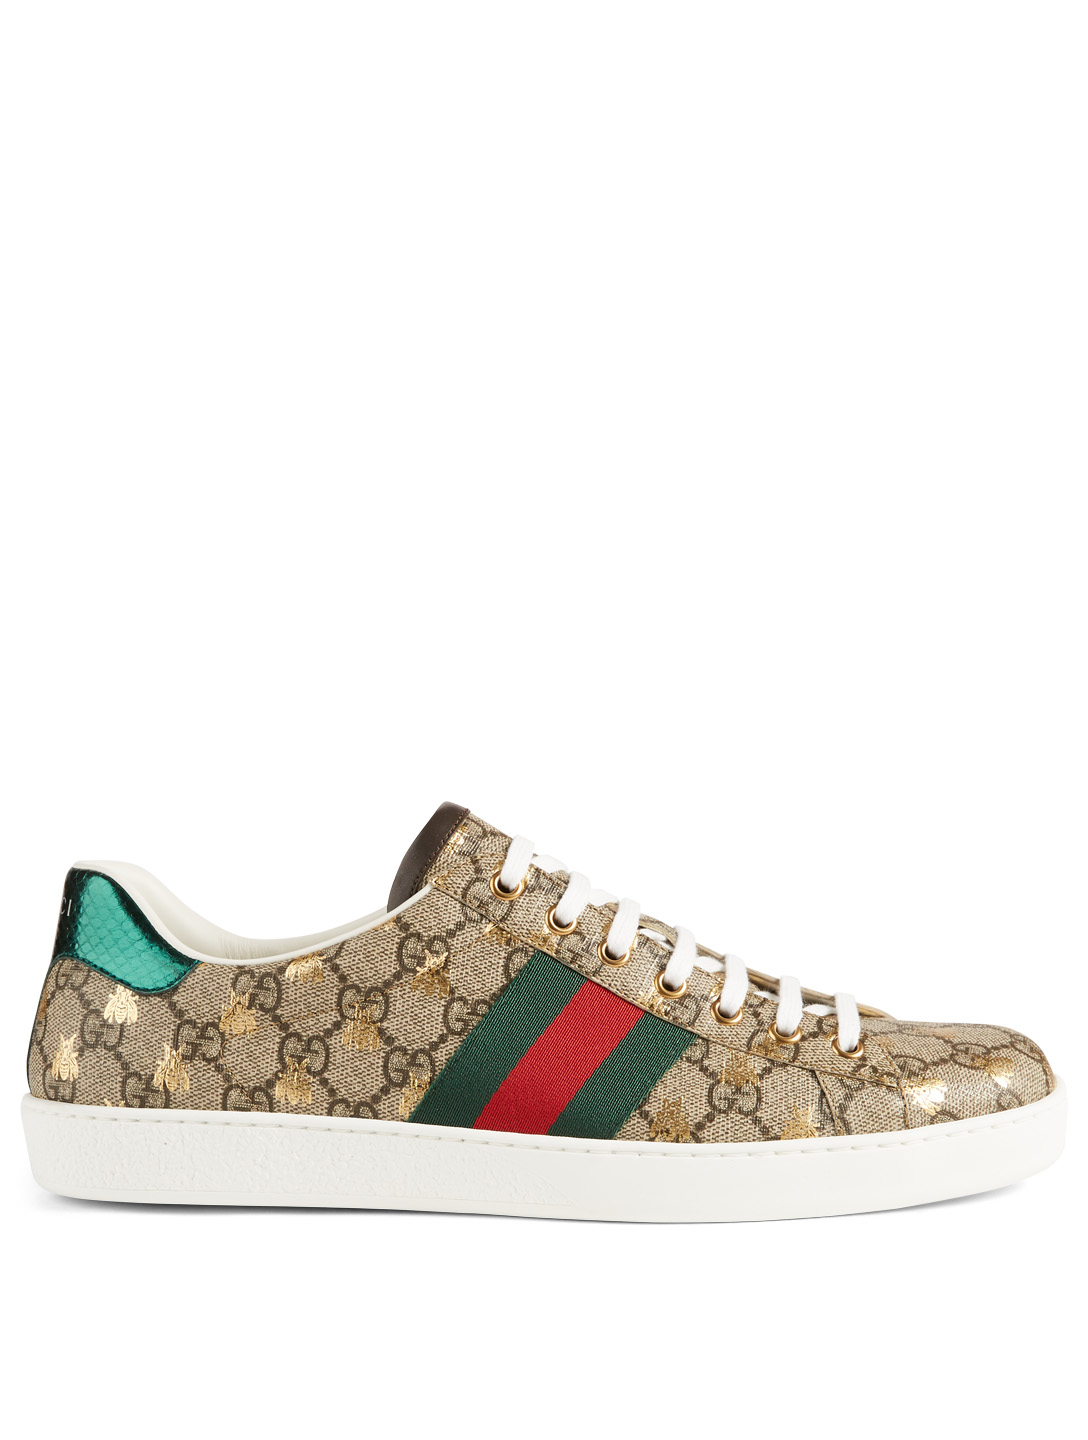 1c5edcaf5c1 GUCCI Ace GG Supreme Sneakers With Bees